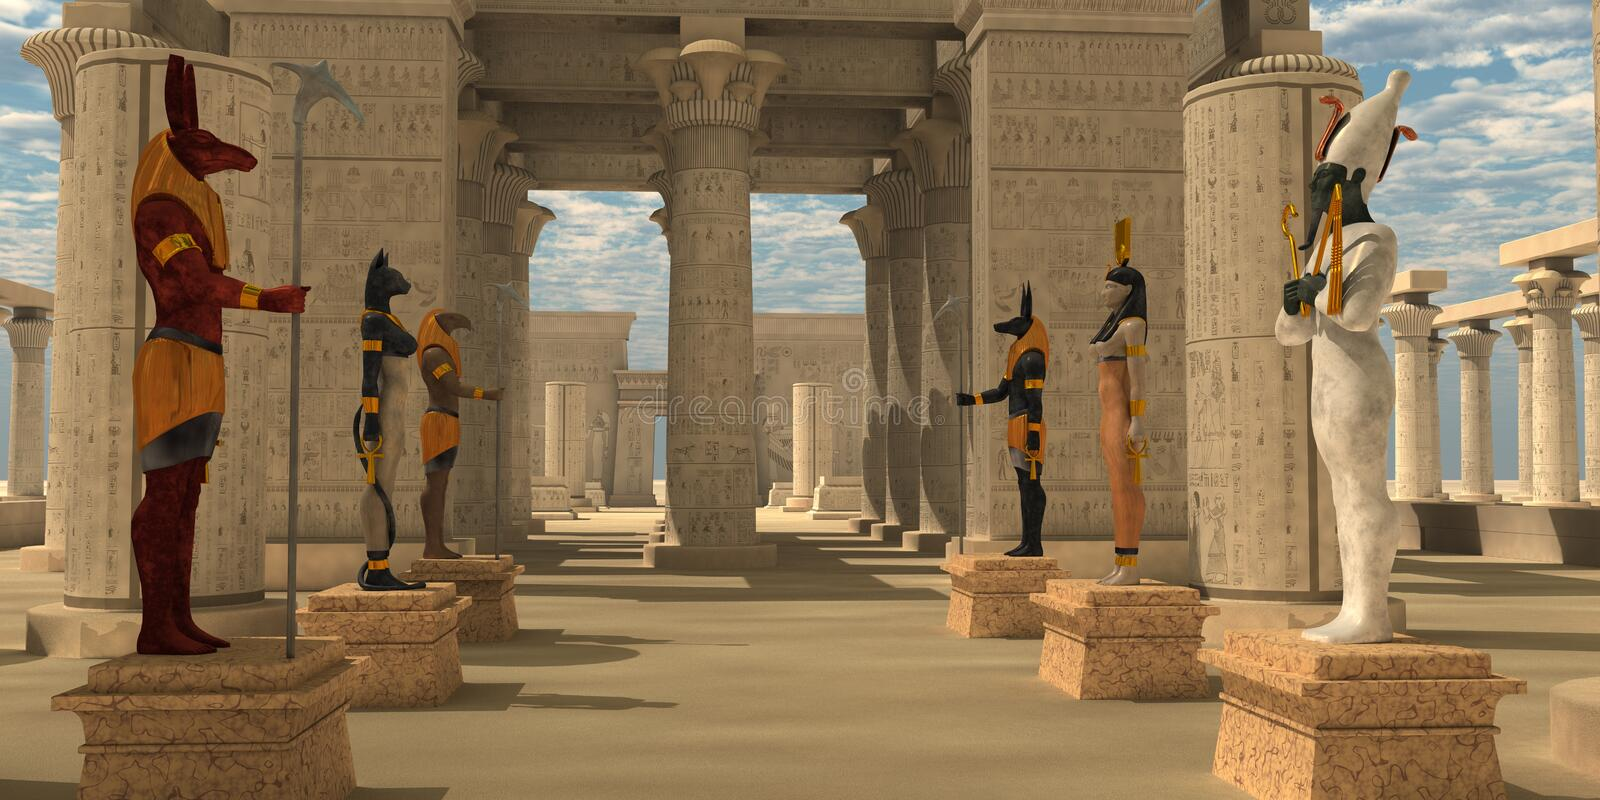 Temple of Ancient Pharaohs. A pharaoh's temple to worship Egyptian gods Seth, Ra, Anubis, Hathor, Osiris, and Bast stock illustration